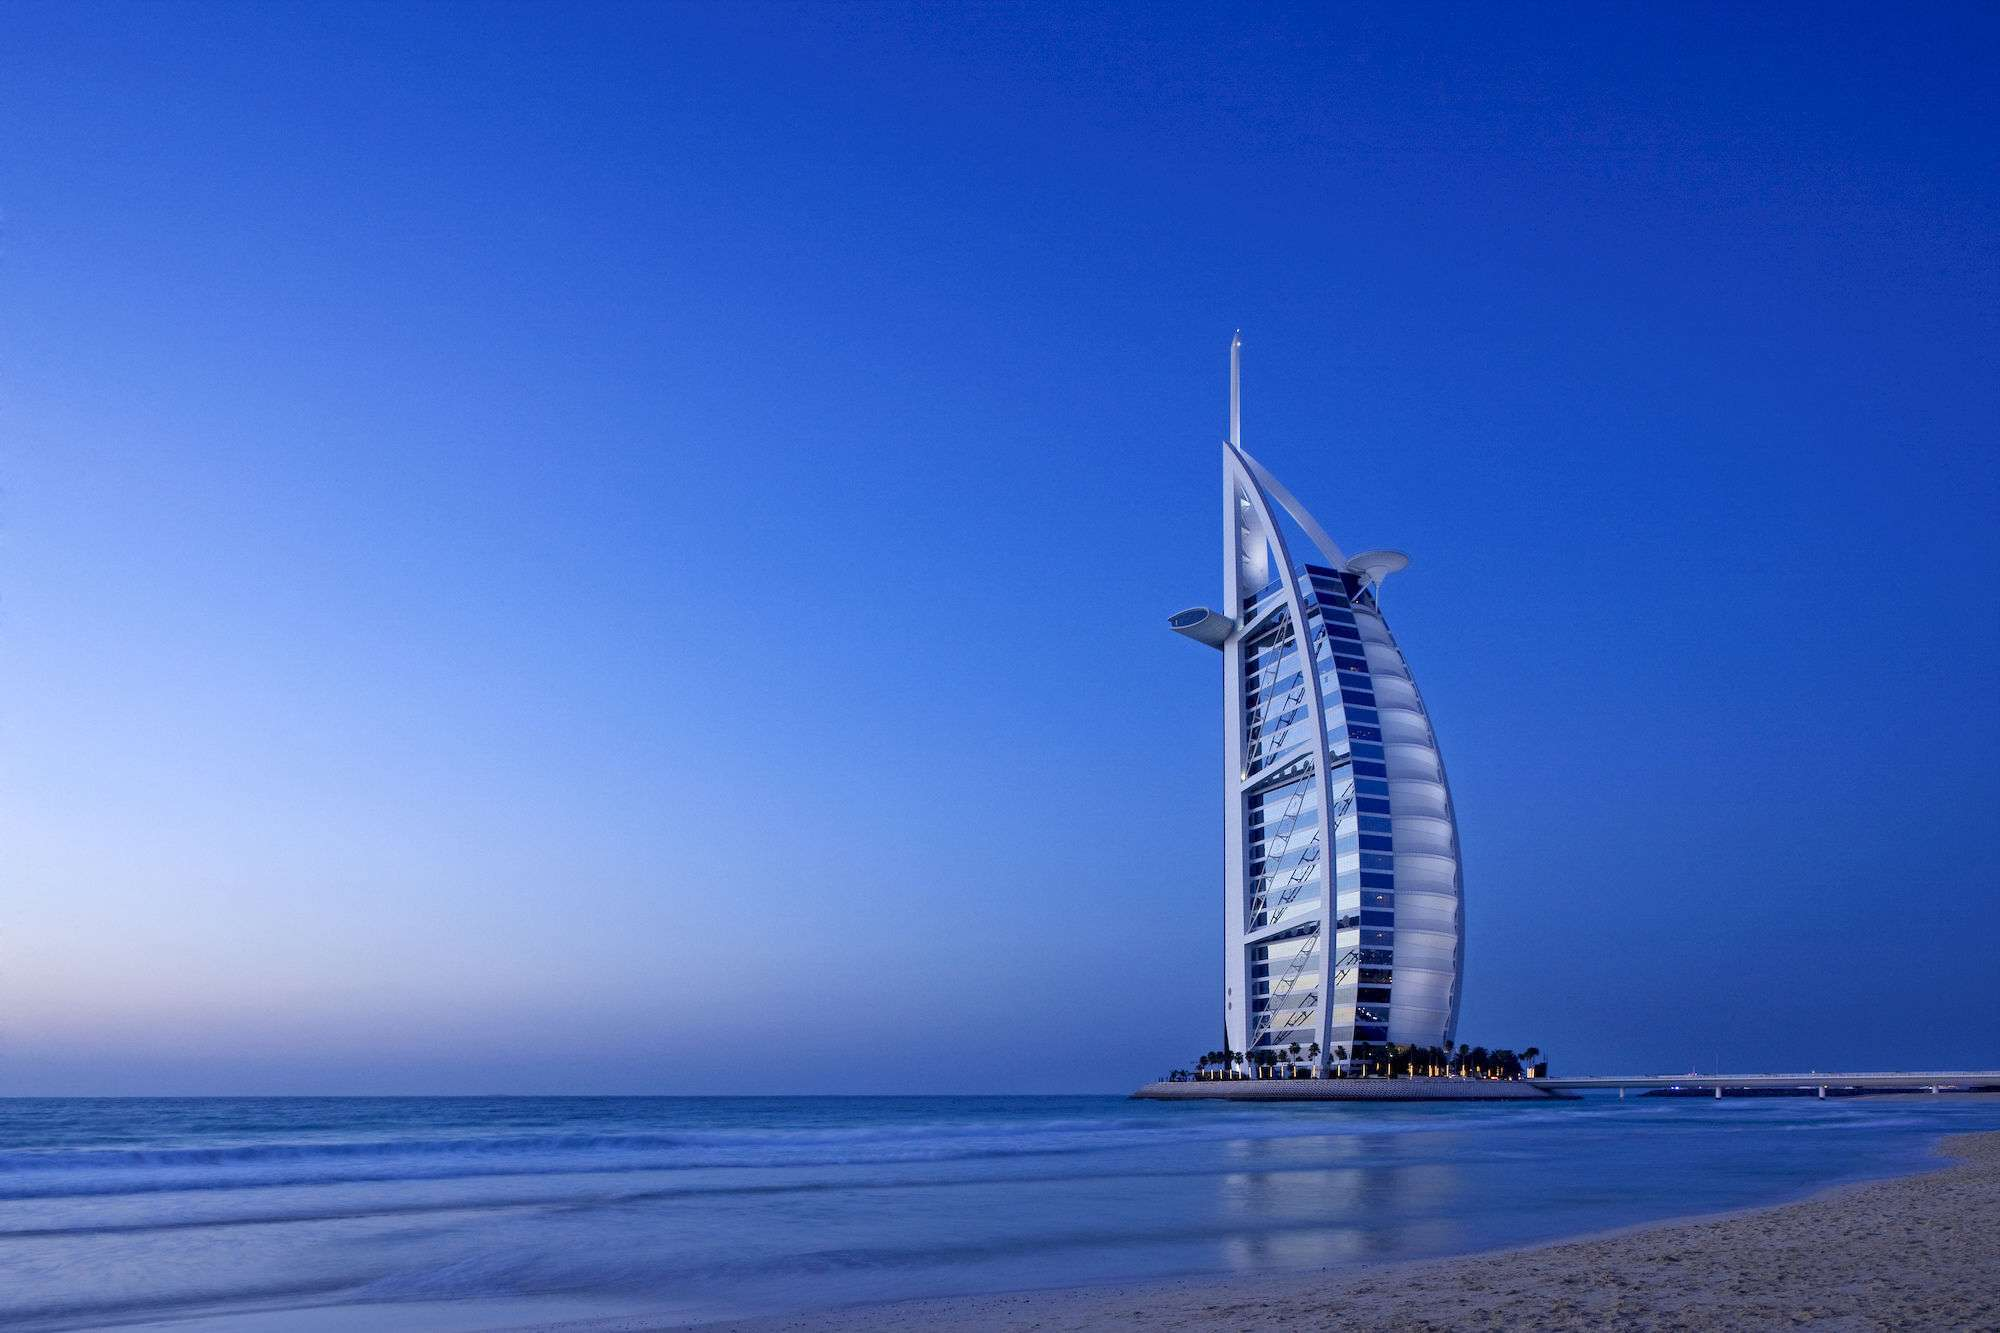 Burj al arab wallpapers images photos pictures backgrounds for Burj arab dubai